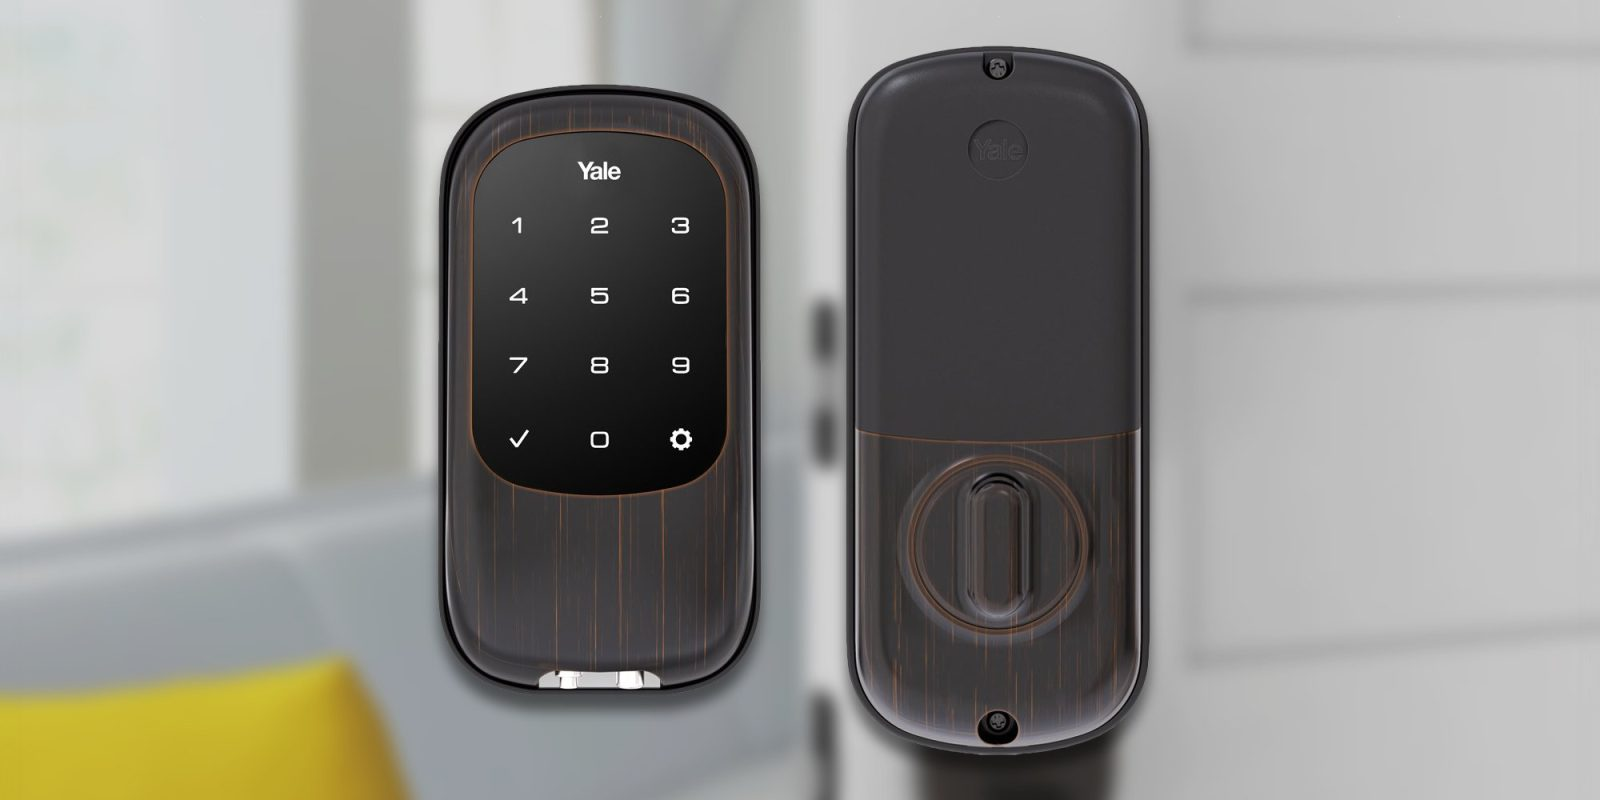 Go keyless with Yale Security's Touchscreen Deadbolt: $92 (Save $35)